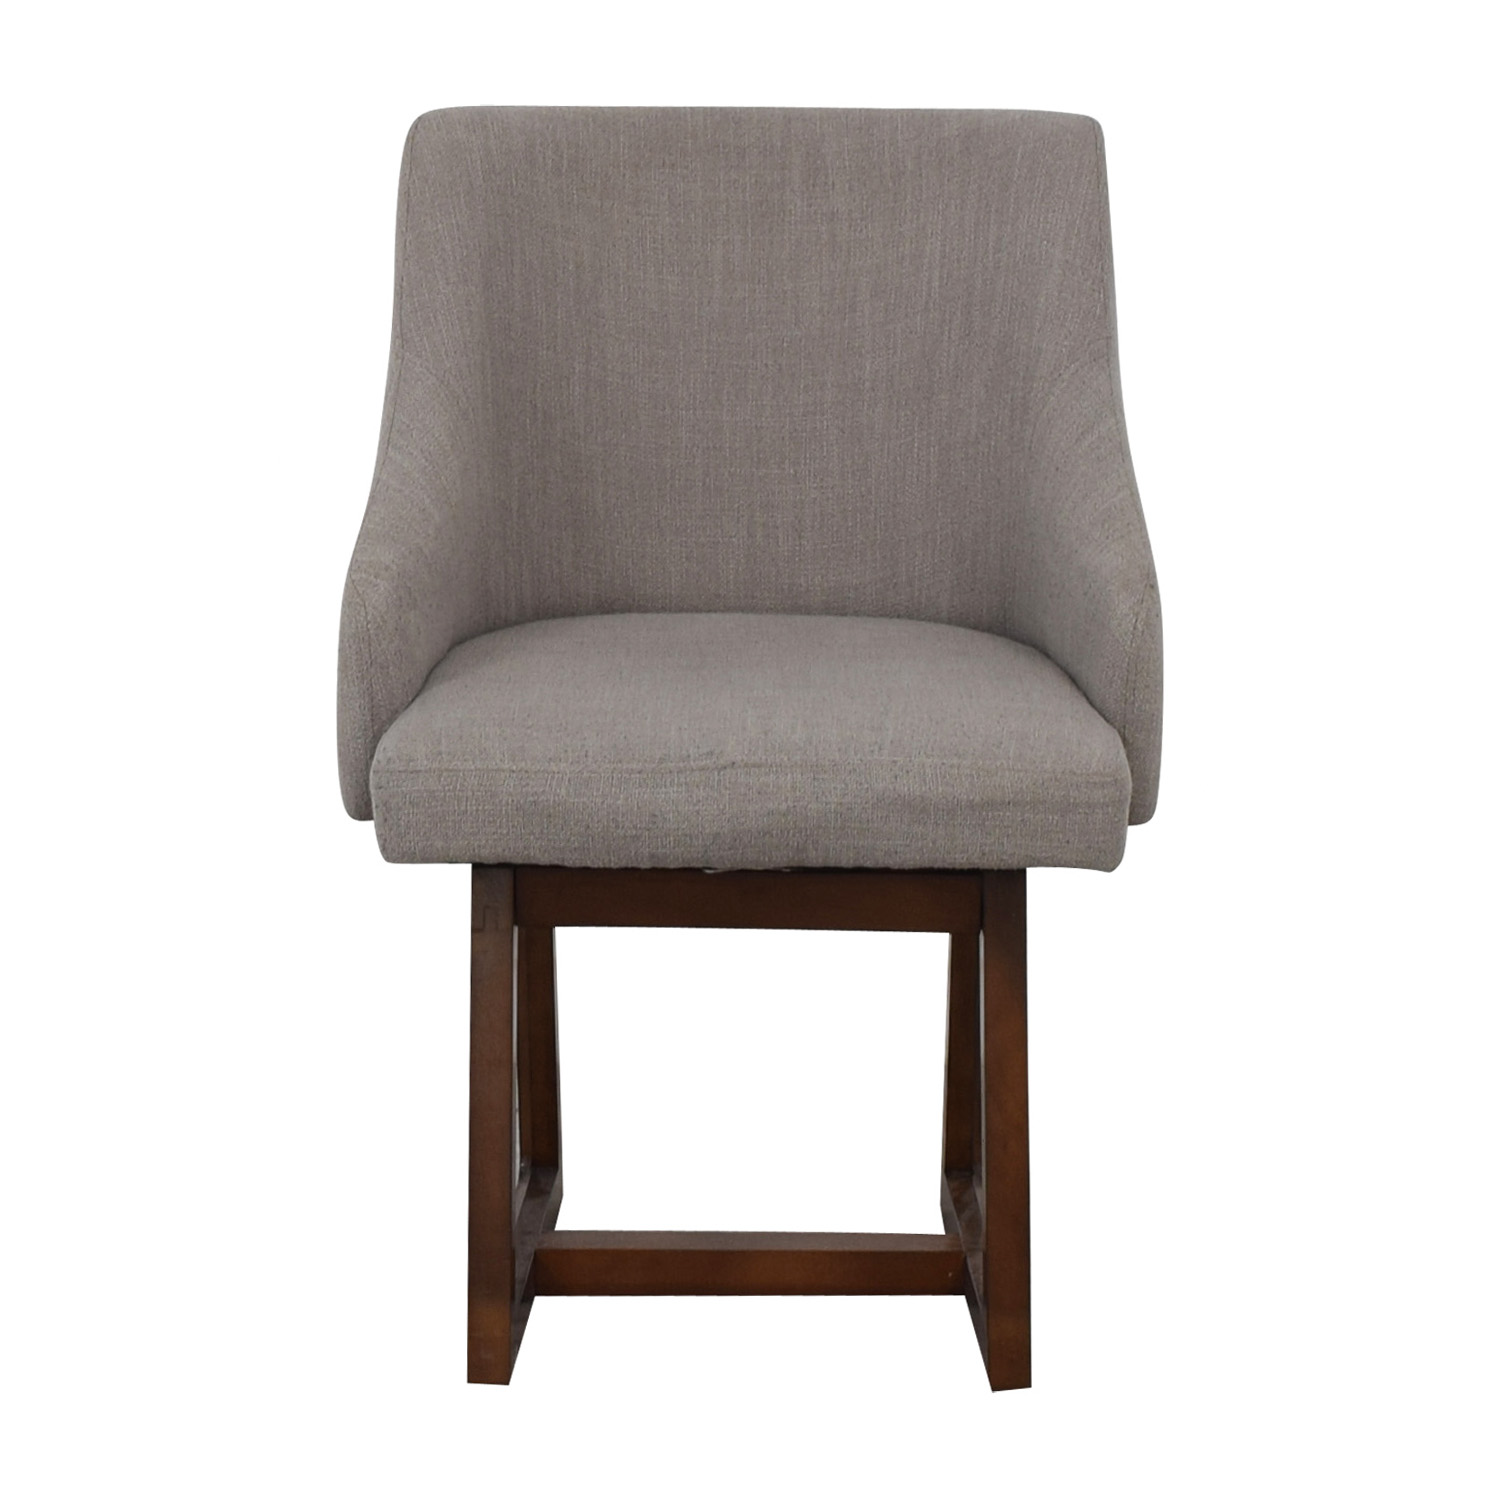 Raymour & Flanigan Raymour & Flanigan Simon Desk Chair used